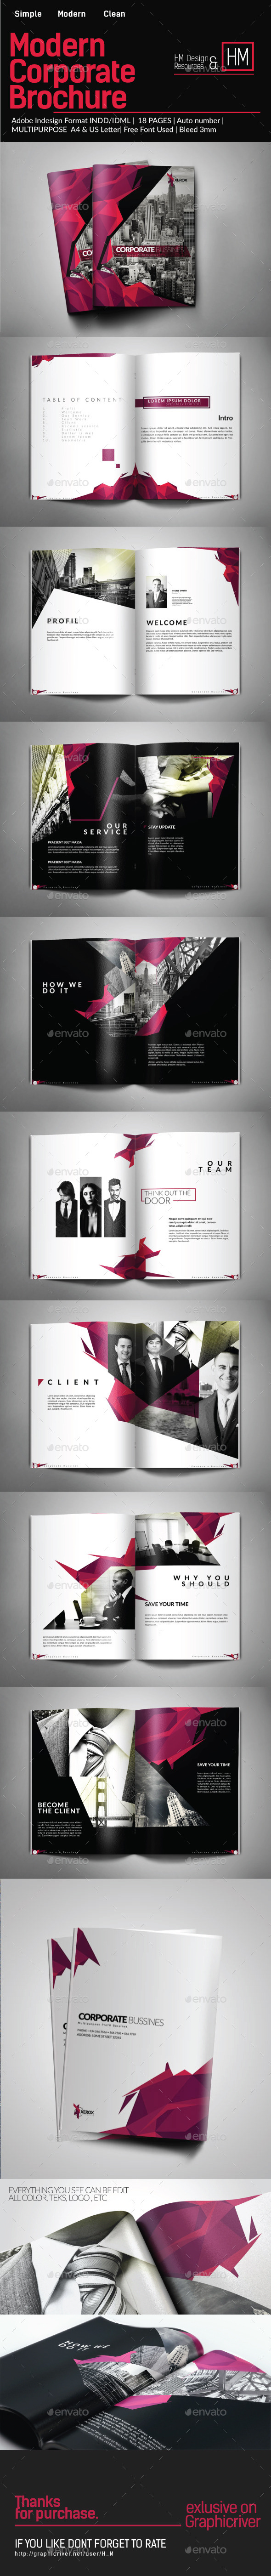 Modern Corporate Bussiness Brochure Potrait - Corporate Brochures